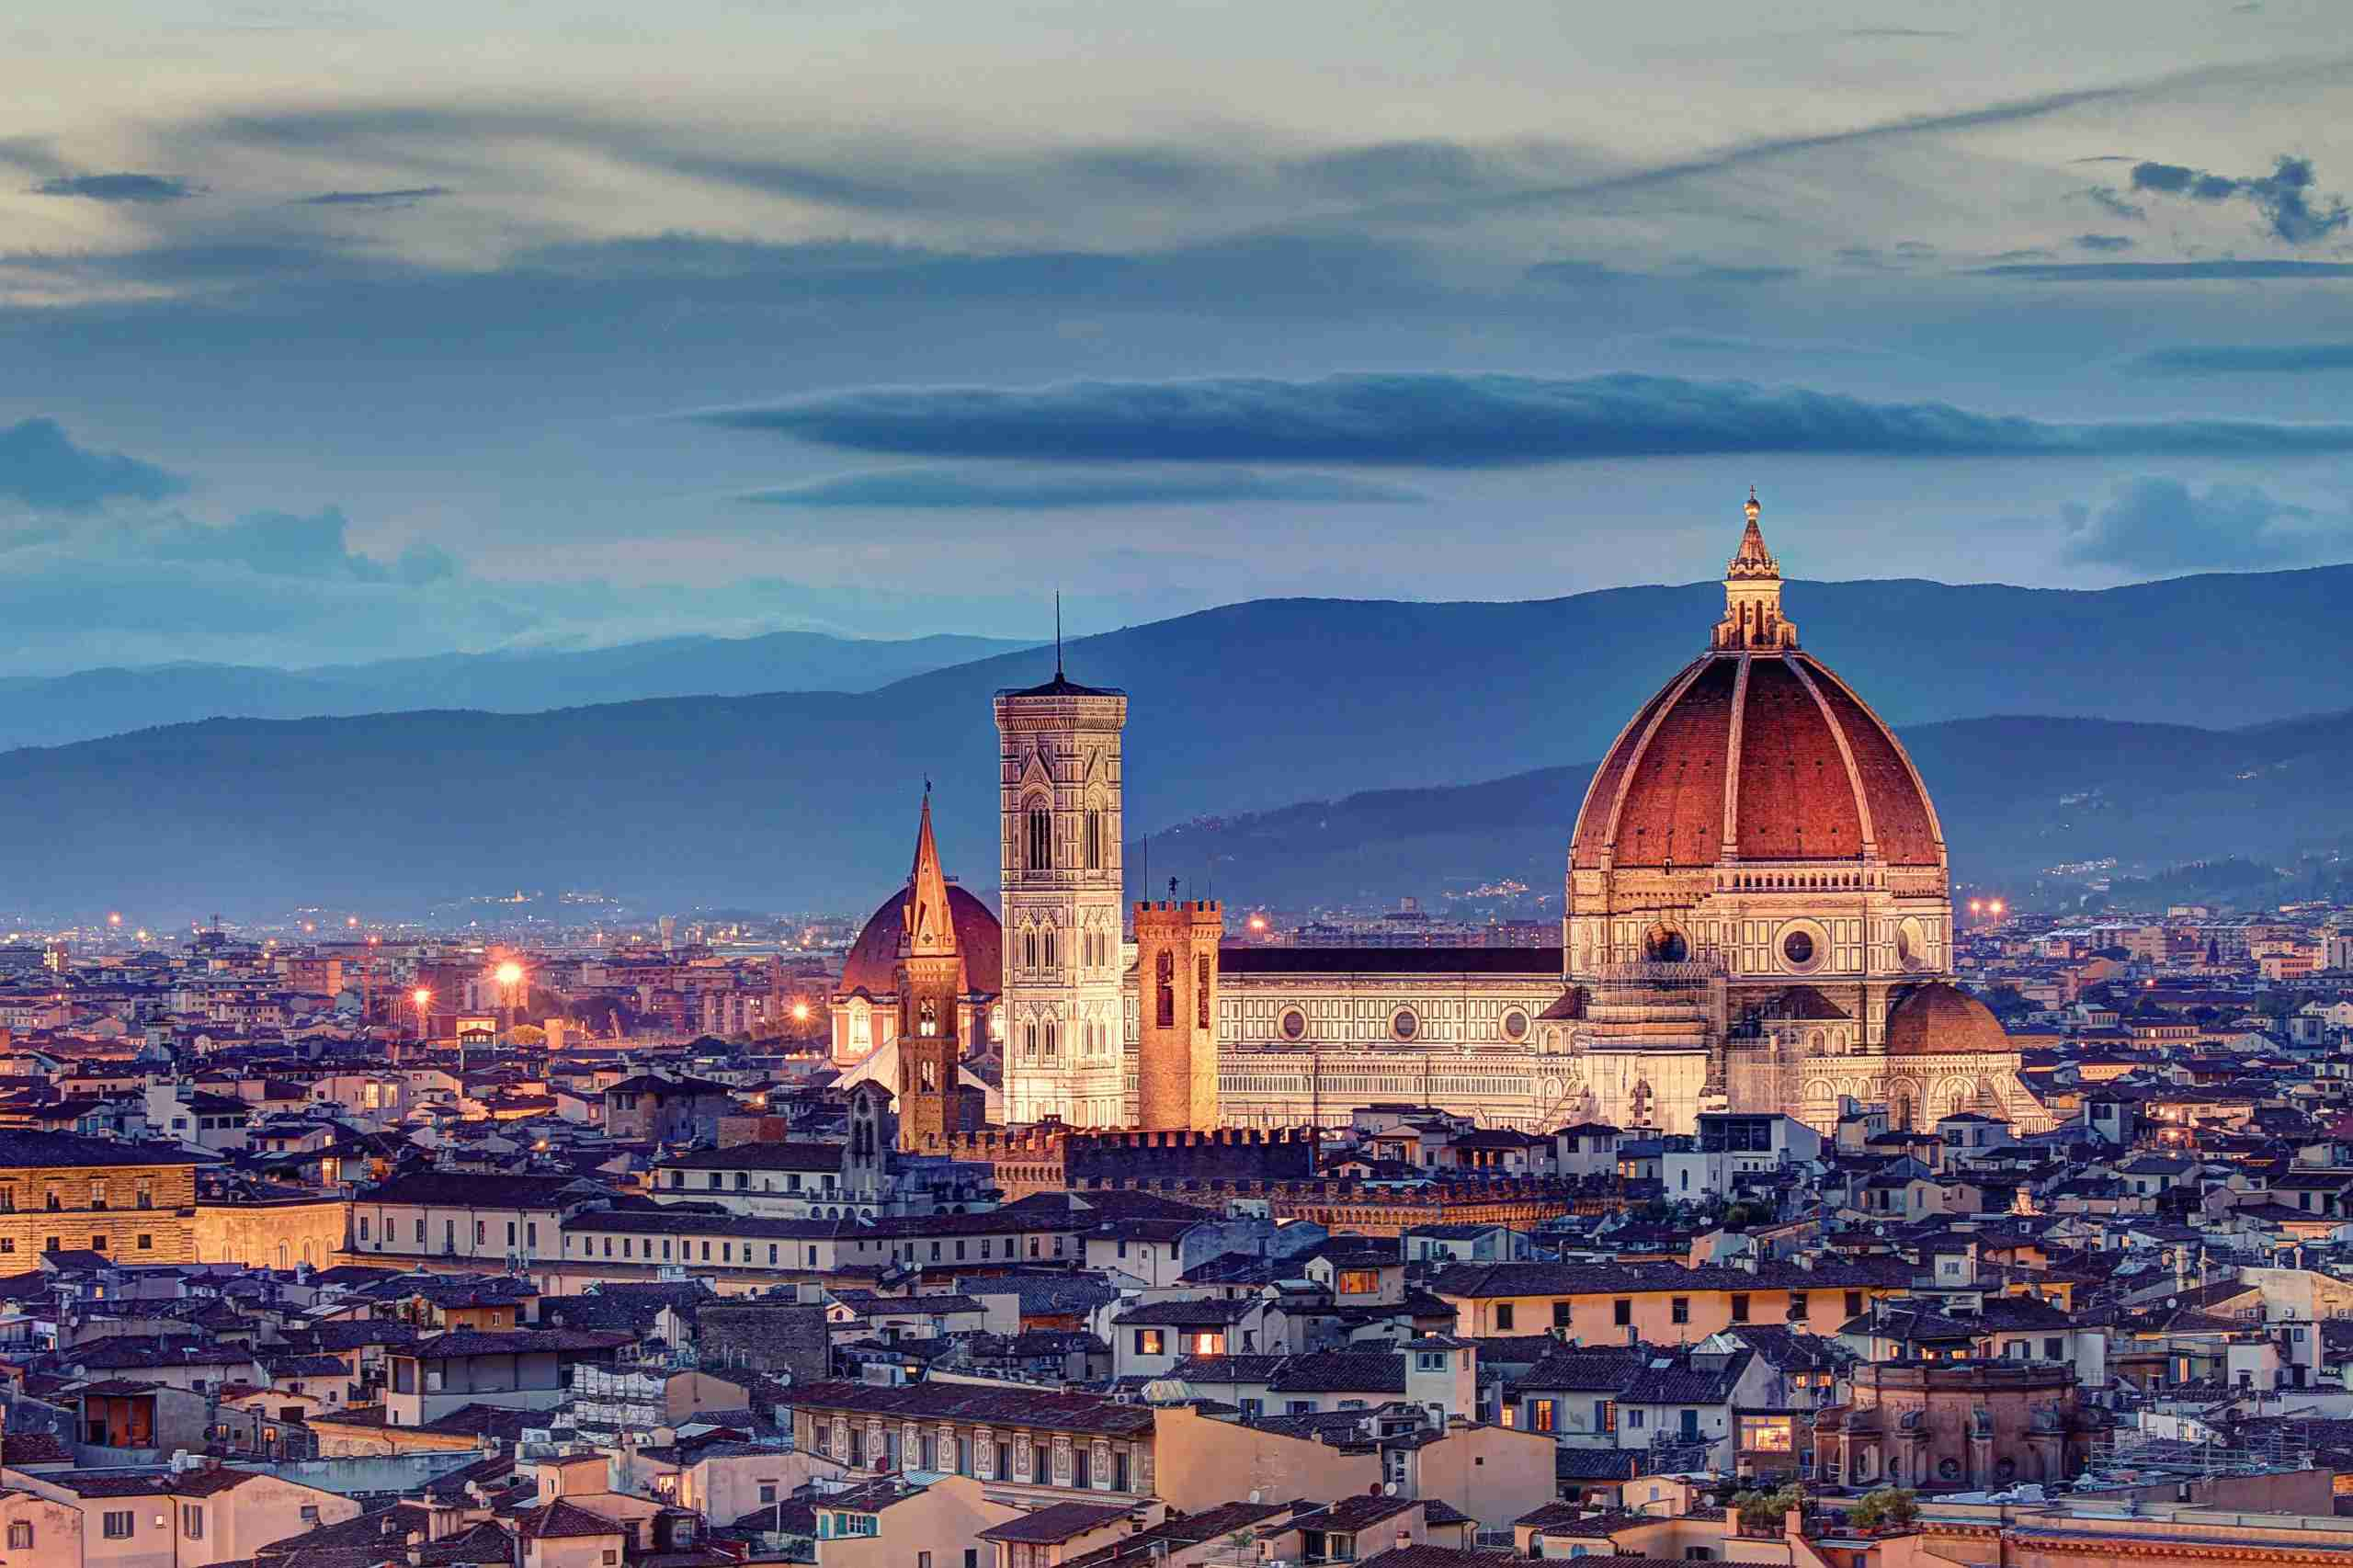 Florence. (Photo by Davide Seddio/Getty Images)